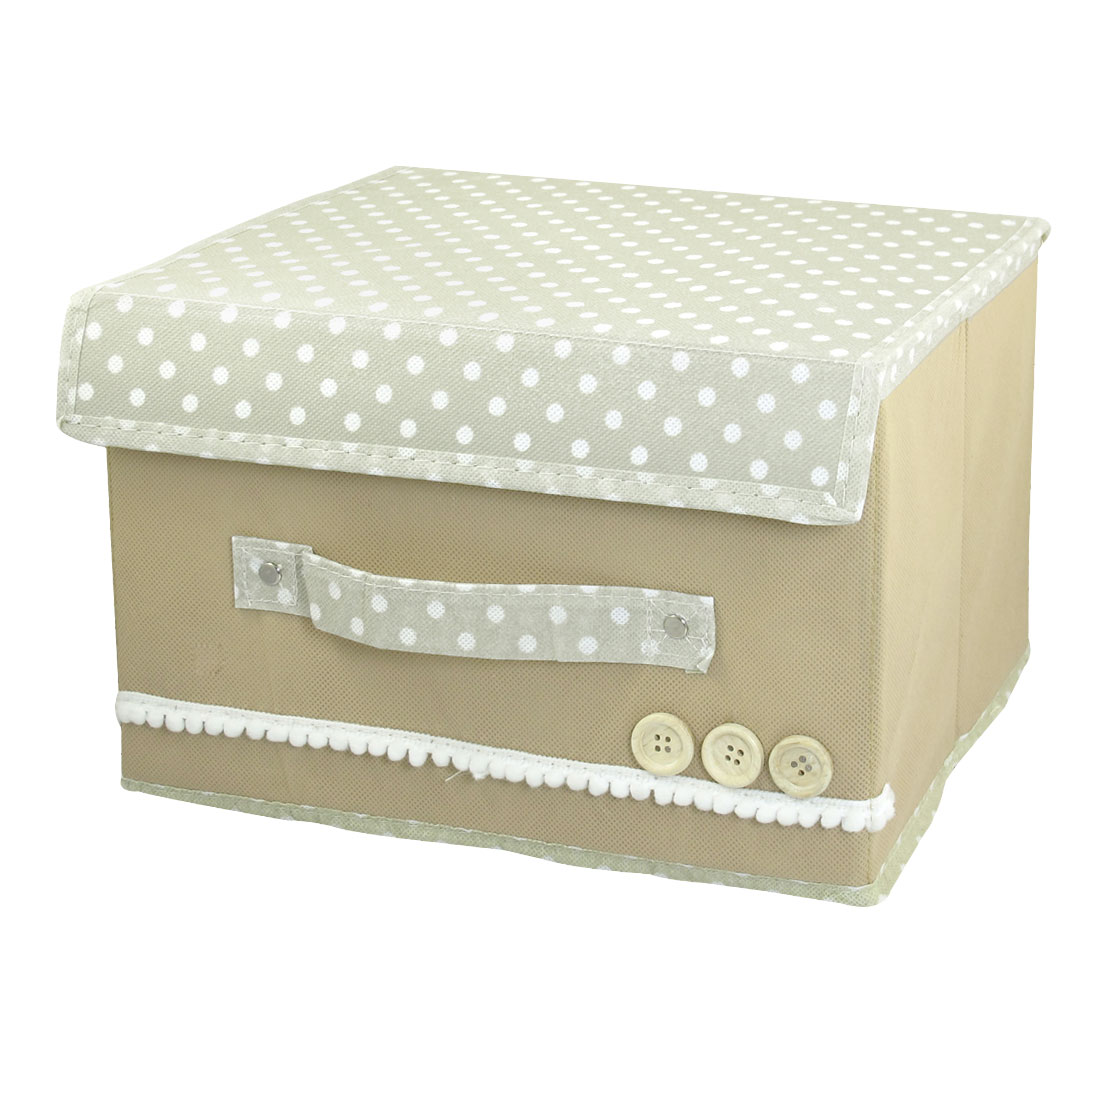 Detachable Closure Dots Design Beige Foldaway Storage Organizer Case Box